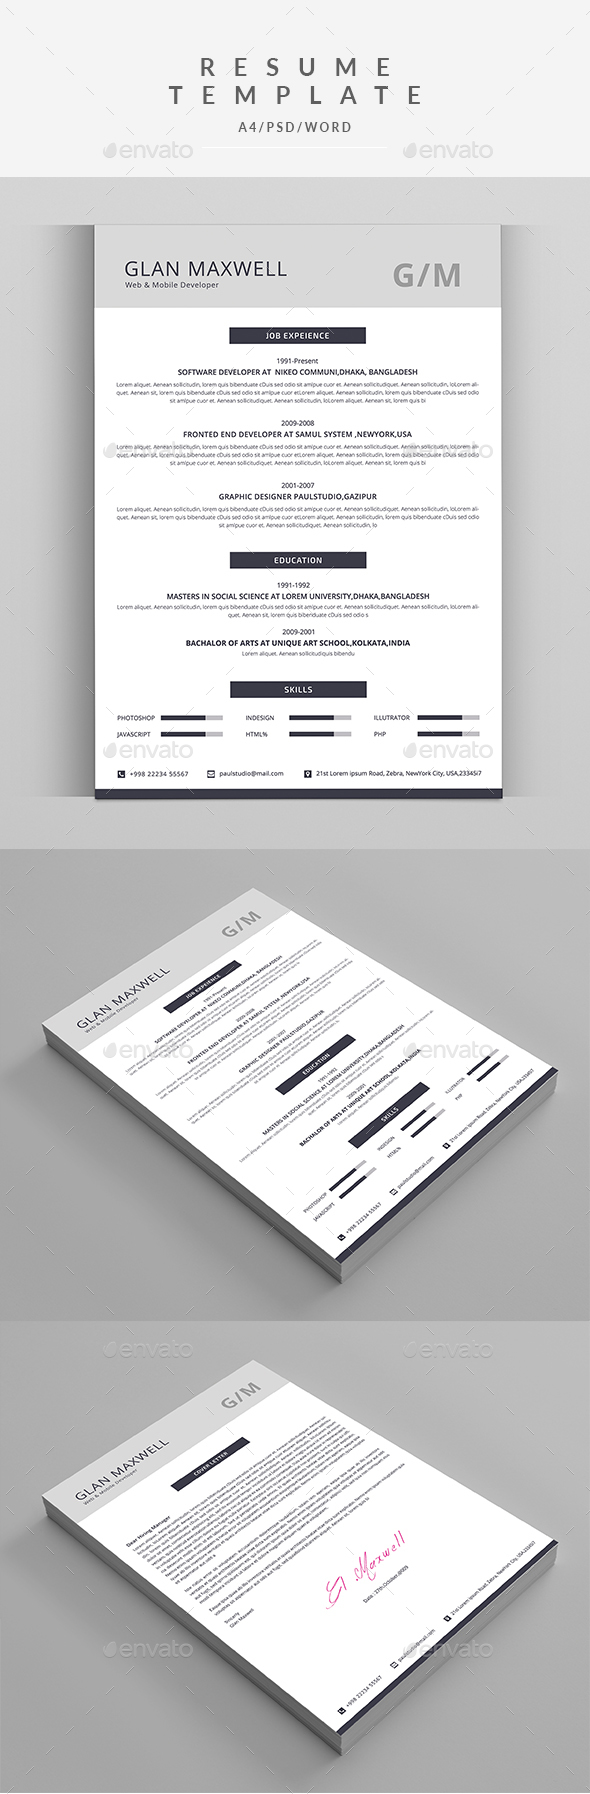 Pin On Best Resume Templates